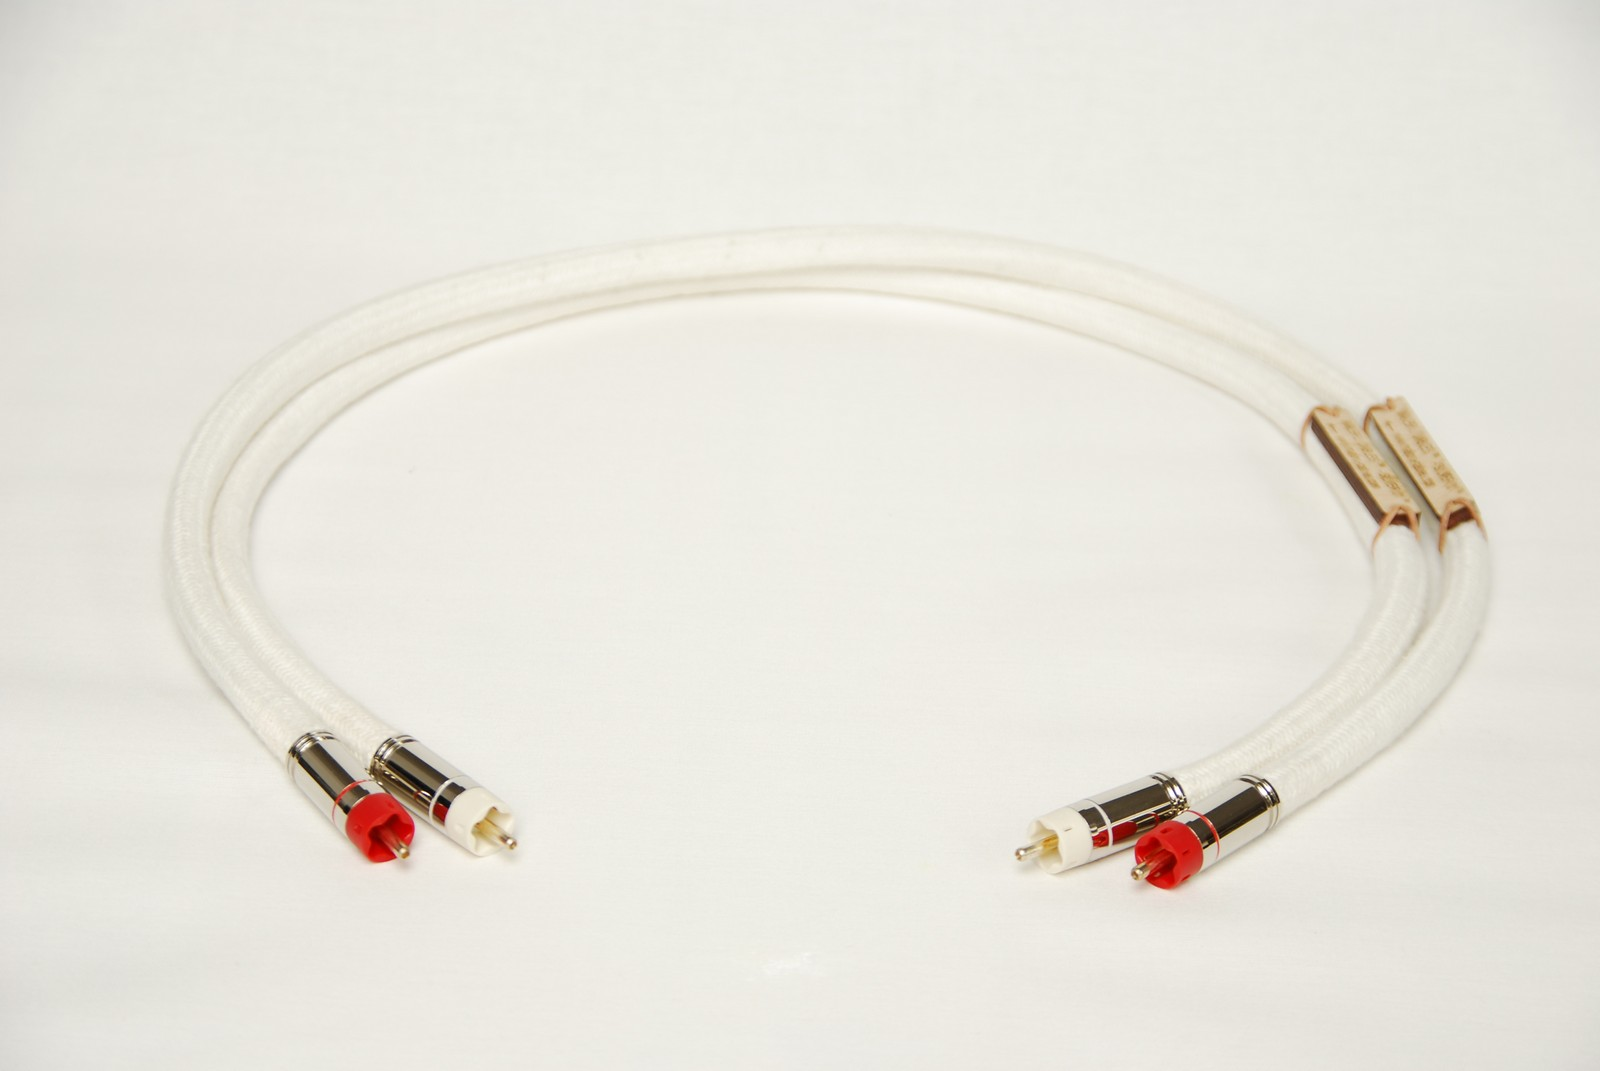 Professional RCA Cables SILVER 1